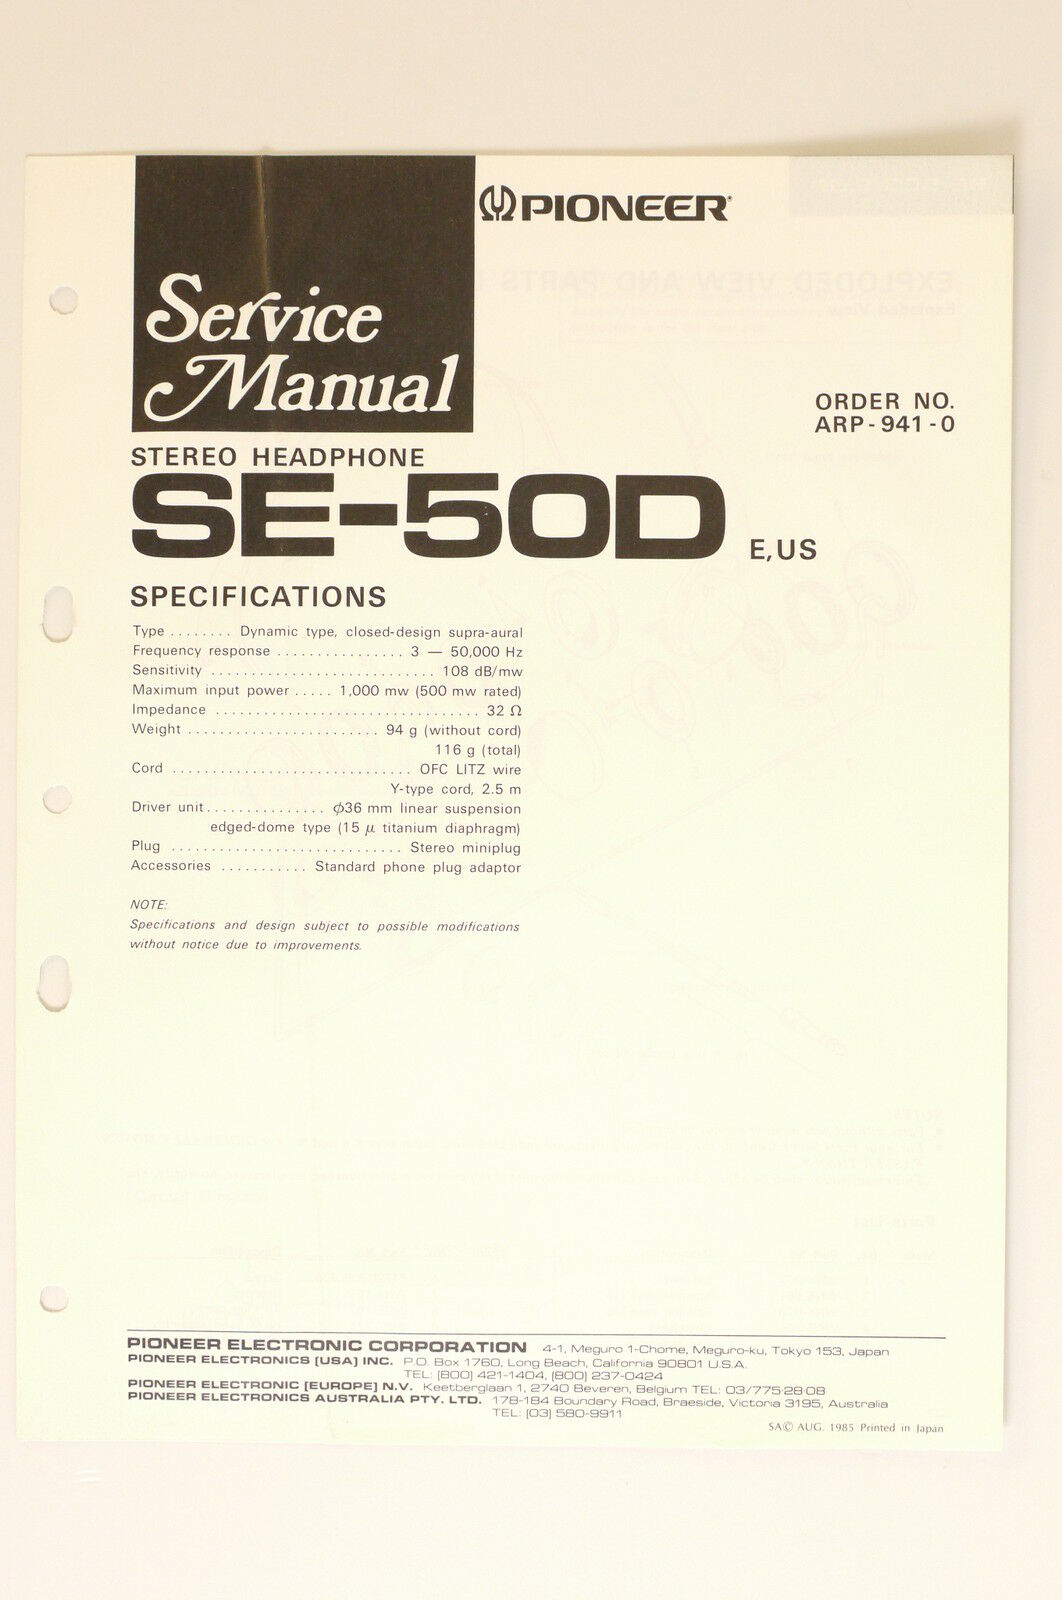 Pioneer Se 50d Stereo Headphones Original Service Manual Wiring Phone Plug Diagram 1 Of 1only Available